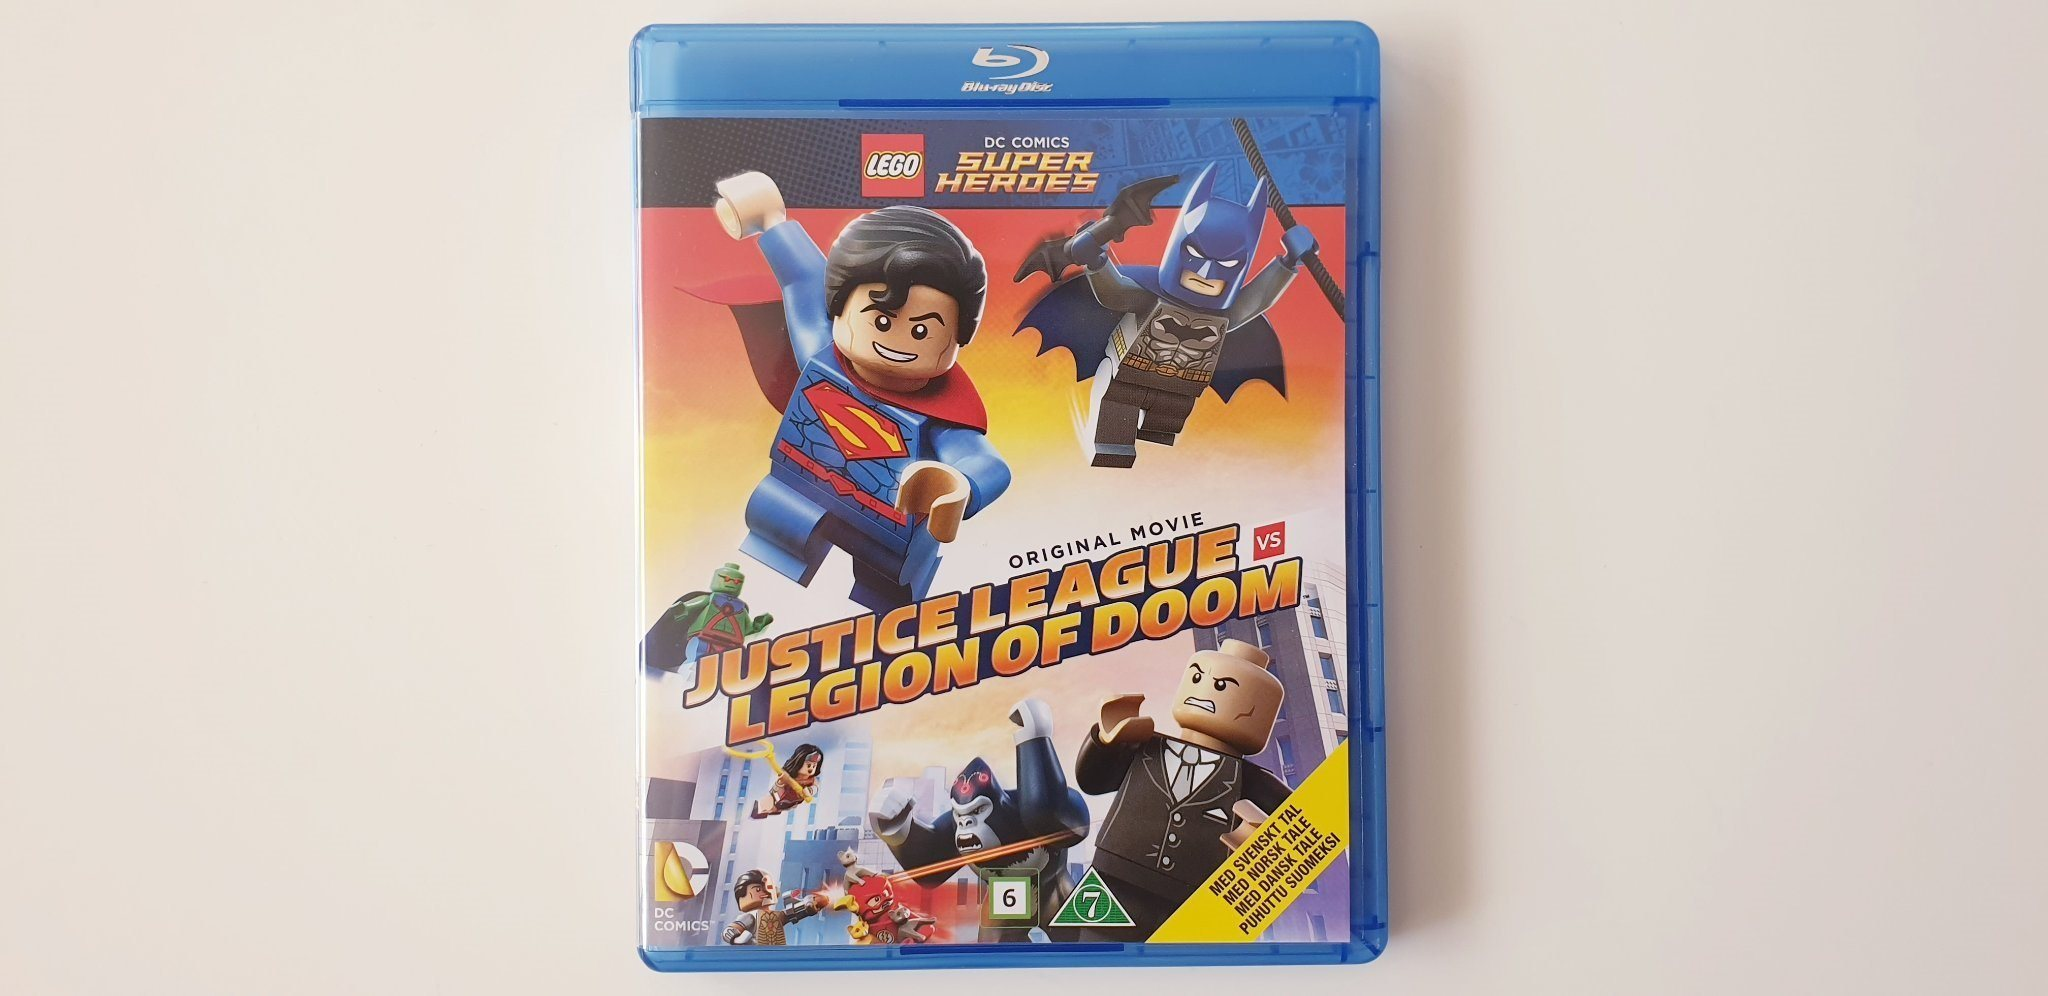 LEGO DC COMICS SUPERHEROES ORIGINAL MOVIE JUSTICE LEAGUE VS LEGION OF DOOM